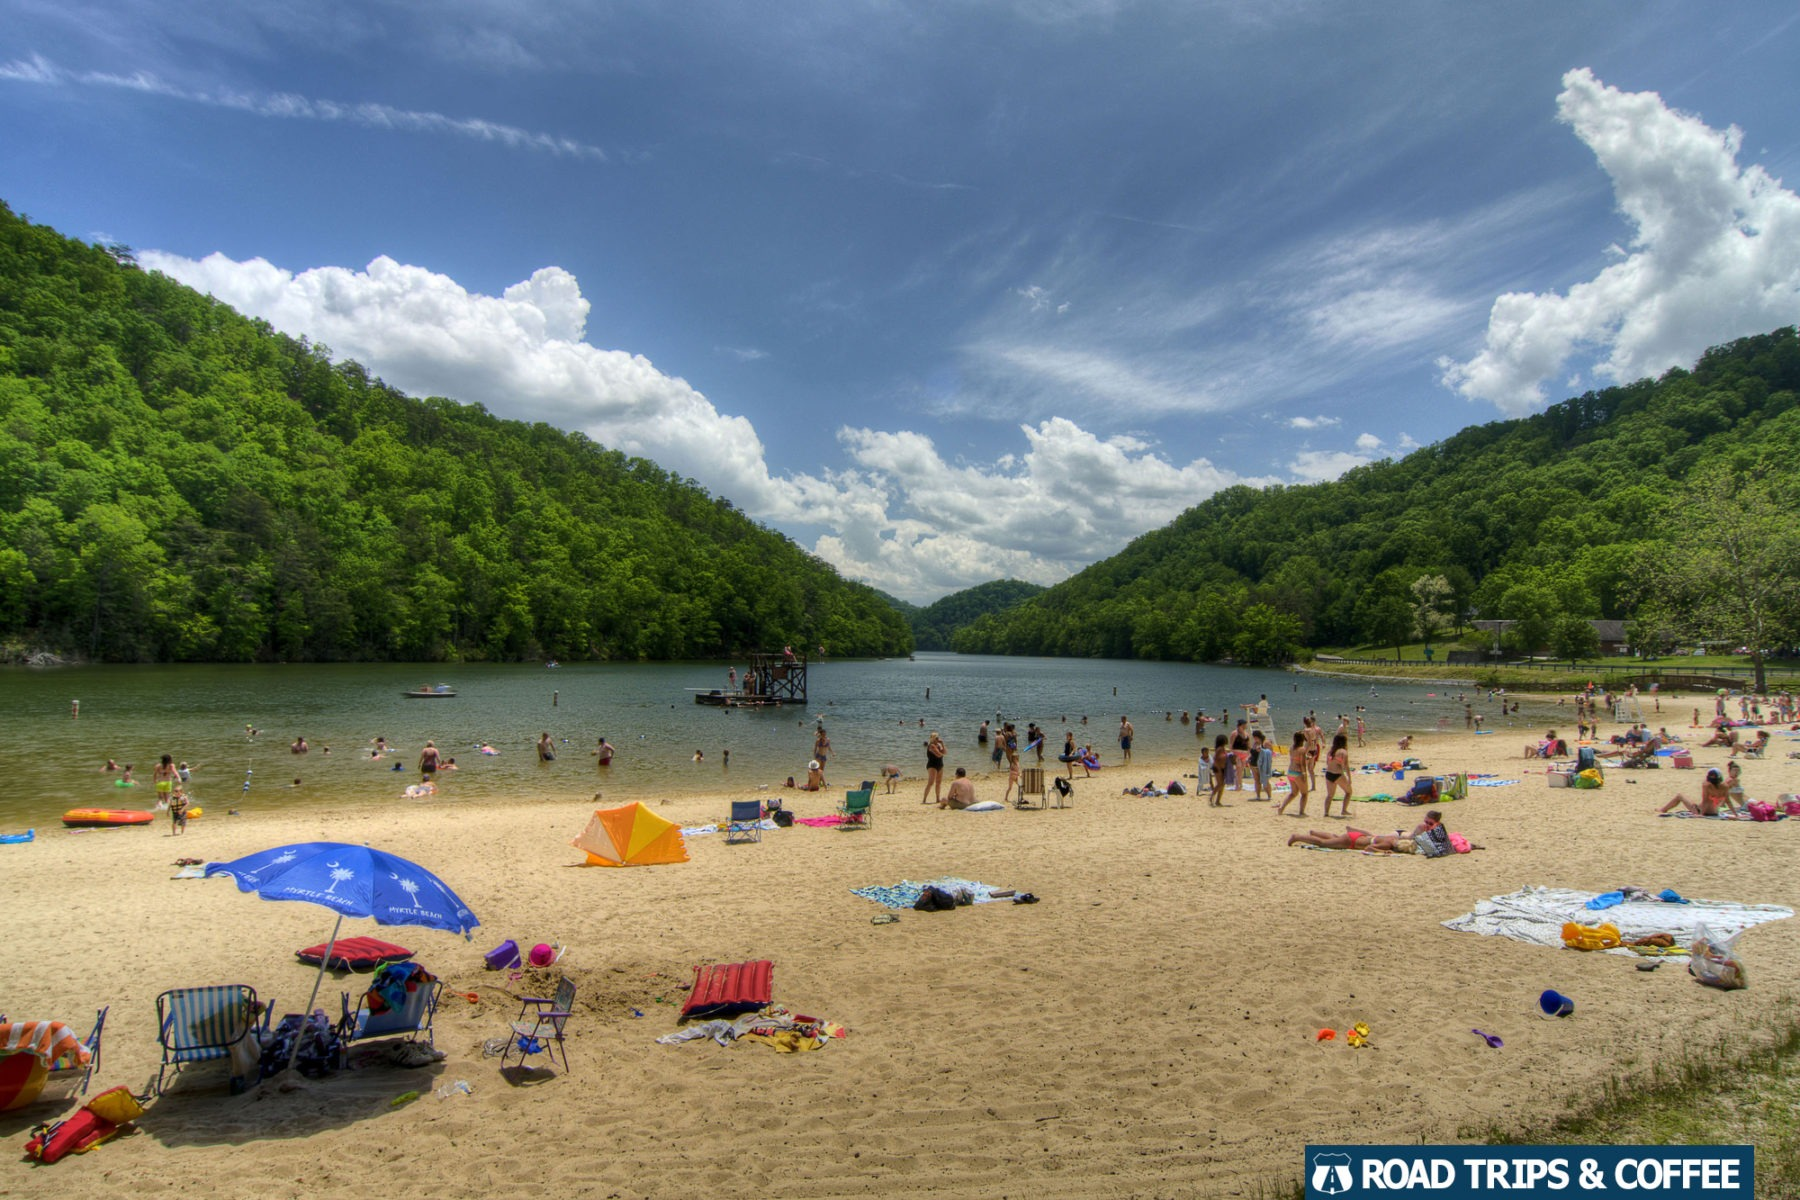 Large sandy beach on the shore of a lake surrounded by the mountains at Hungry Mother State Park in Marion, Virginia